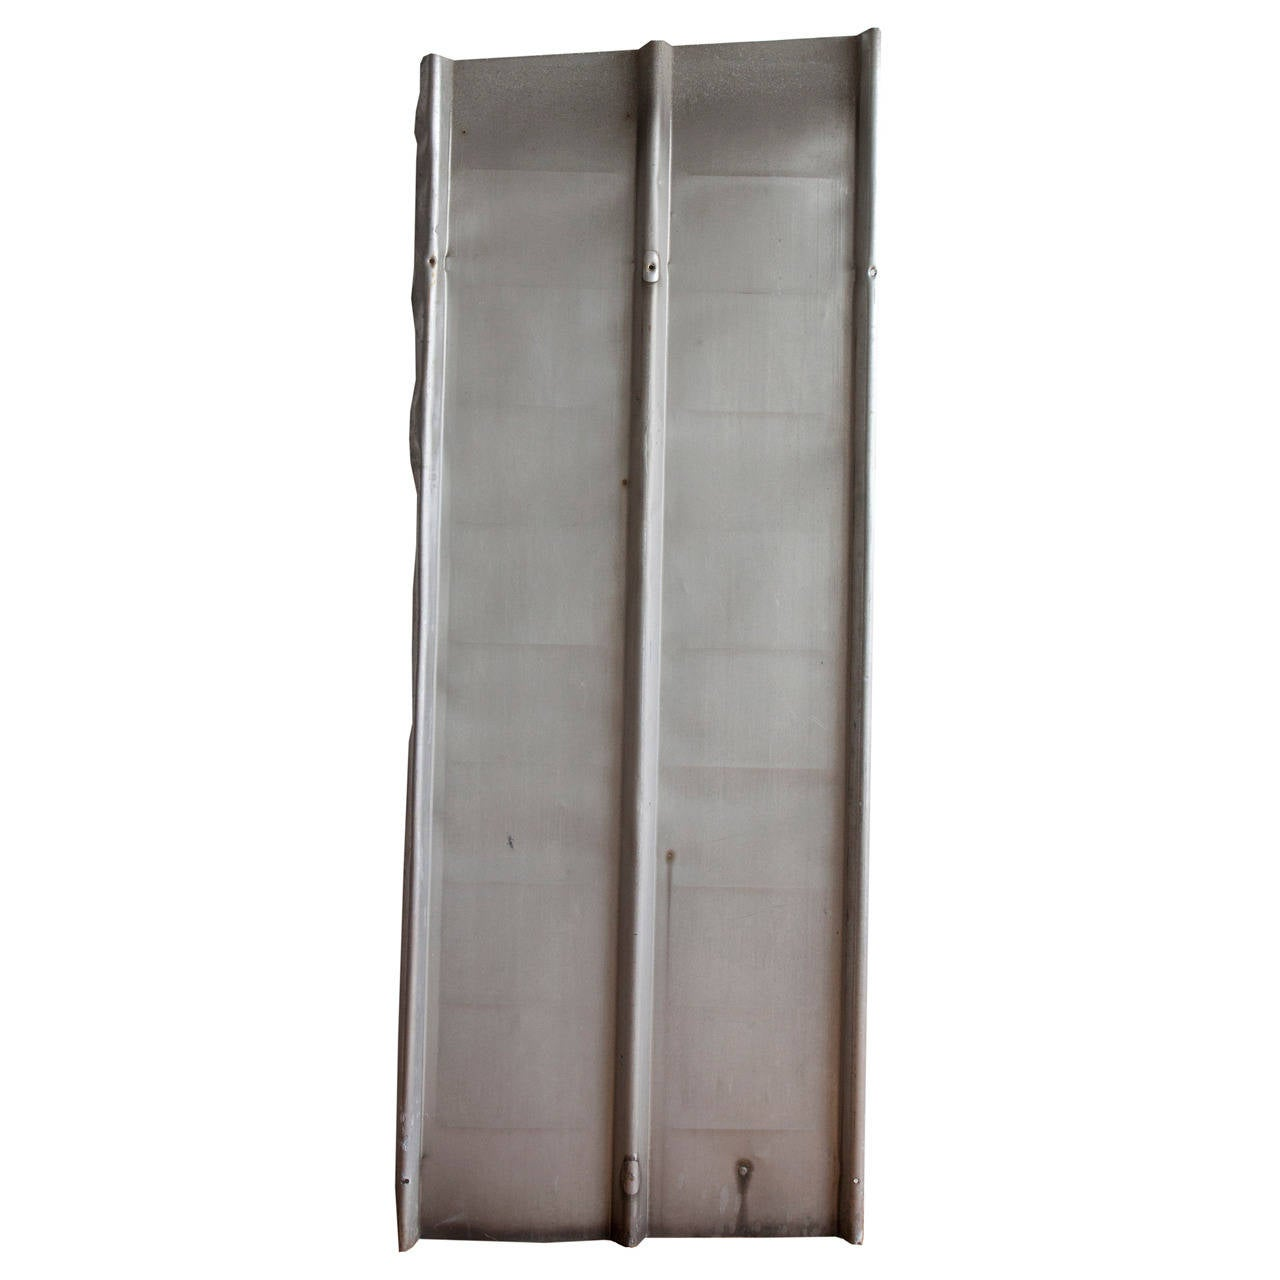 Ten Aluminium Architectural Panels by Jean Prouvé For Sale